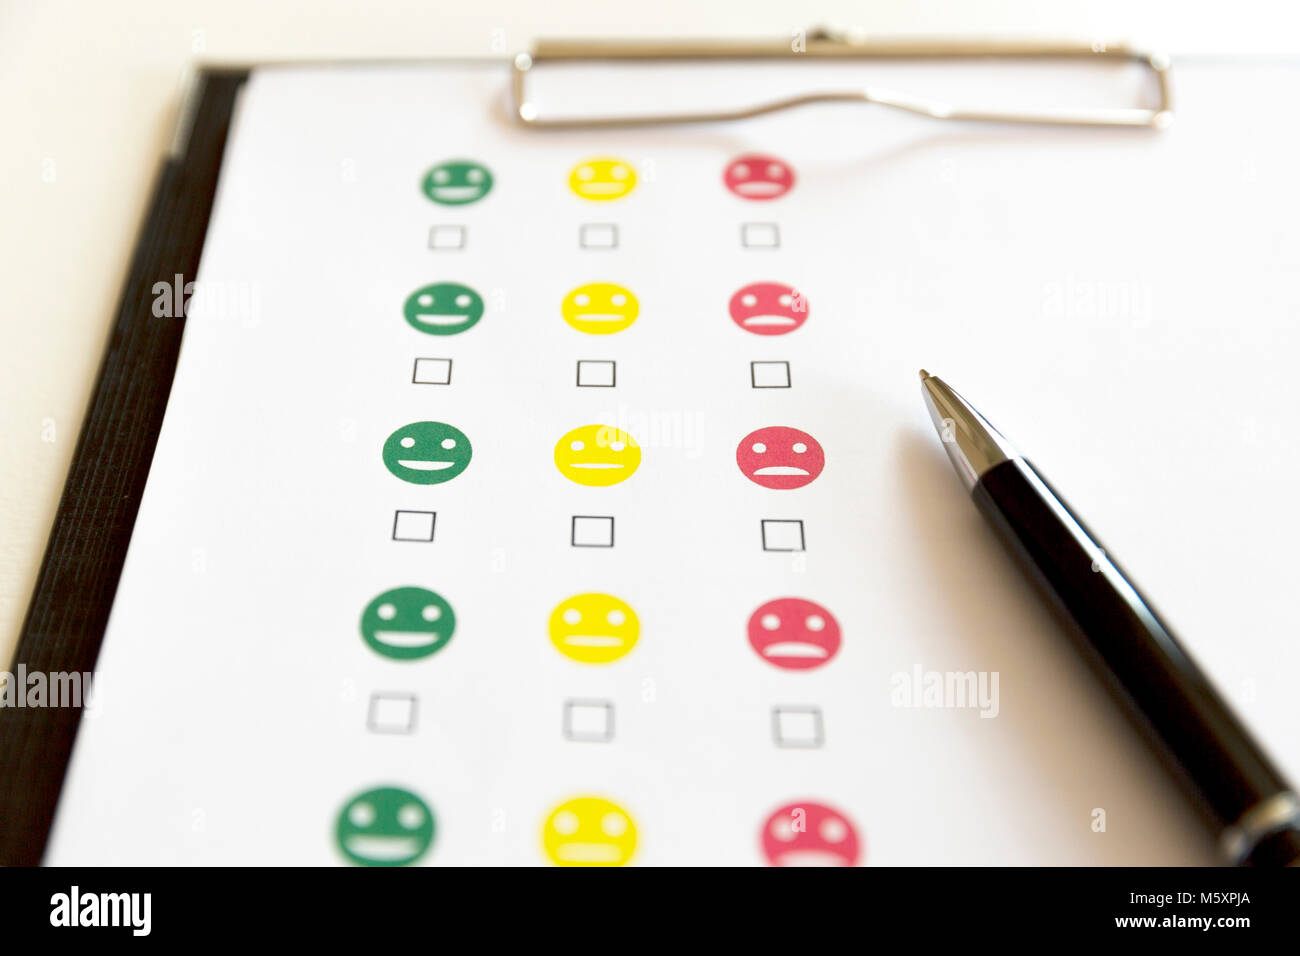 Customer service evaluation survey with smiley faces and pen. - Stock Image